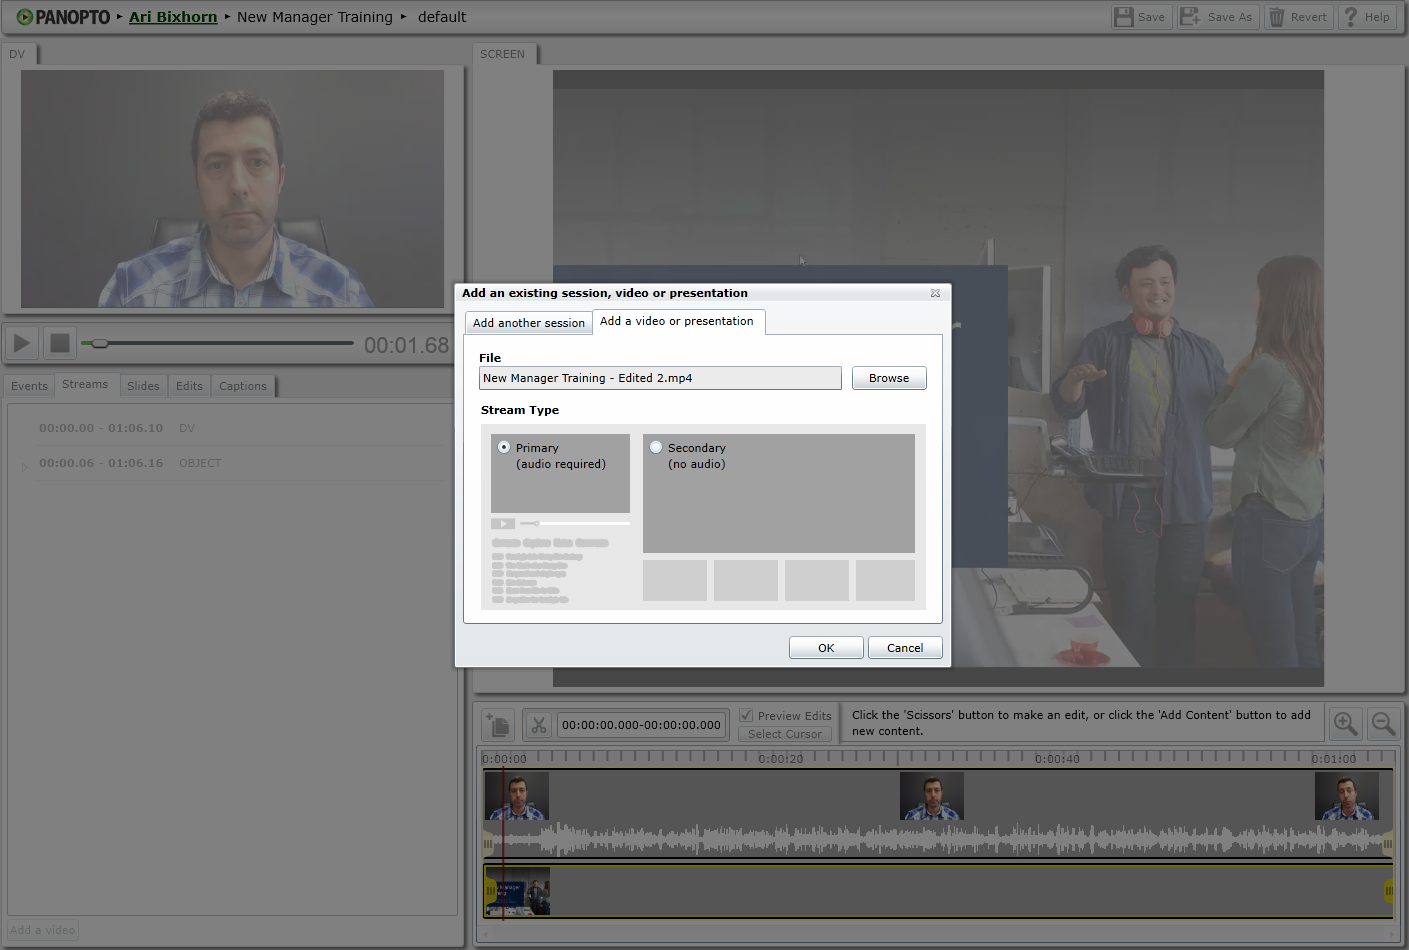 Editor - Select Video - Panopto Enterprise Video Platform